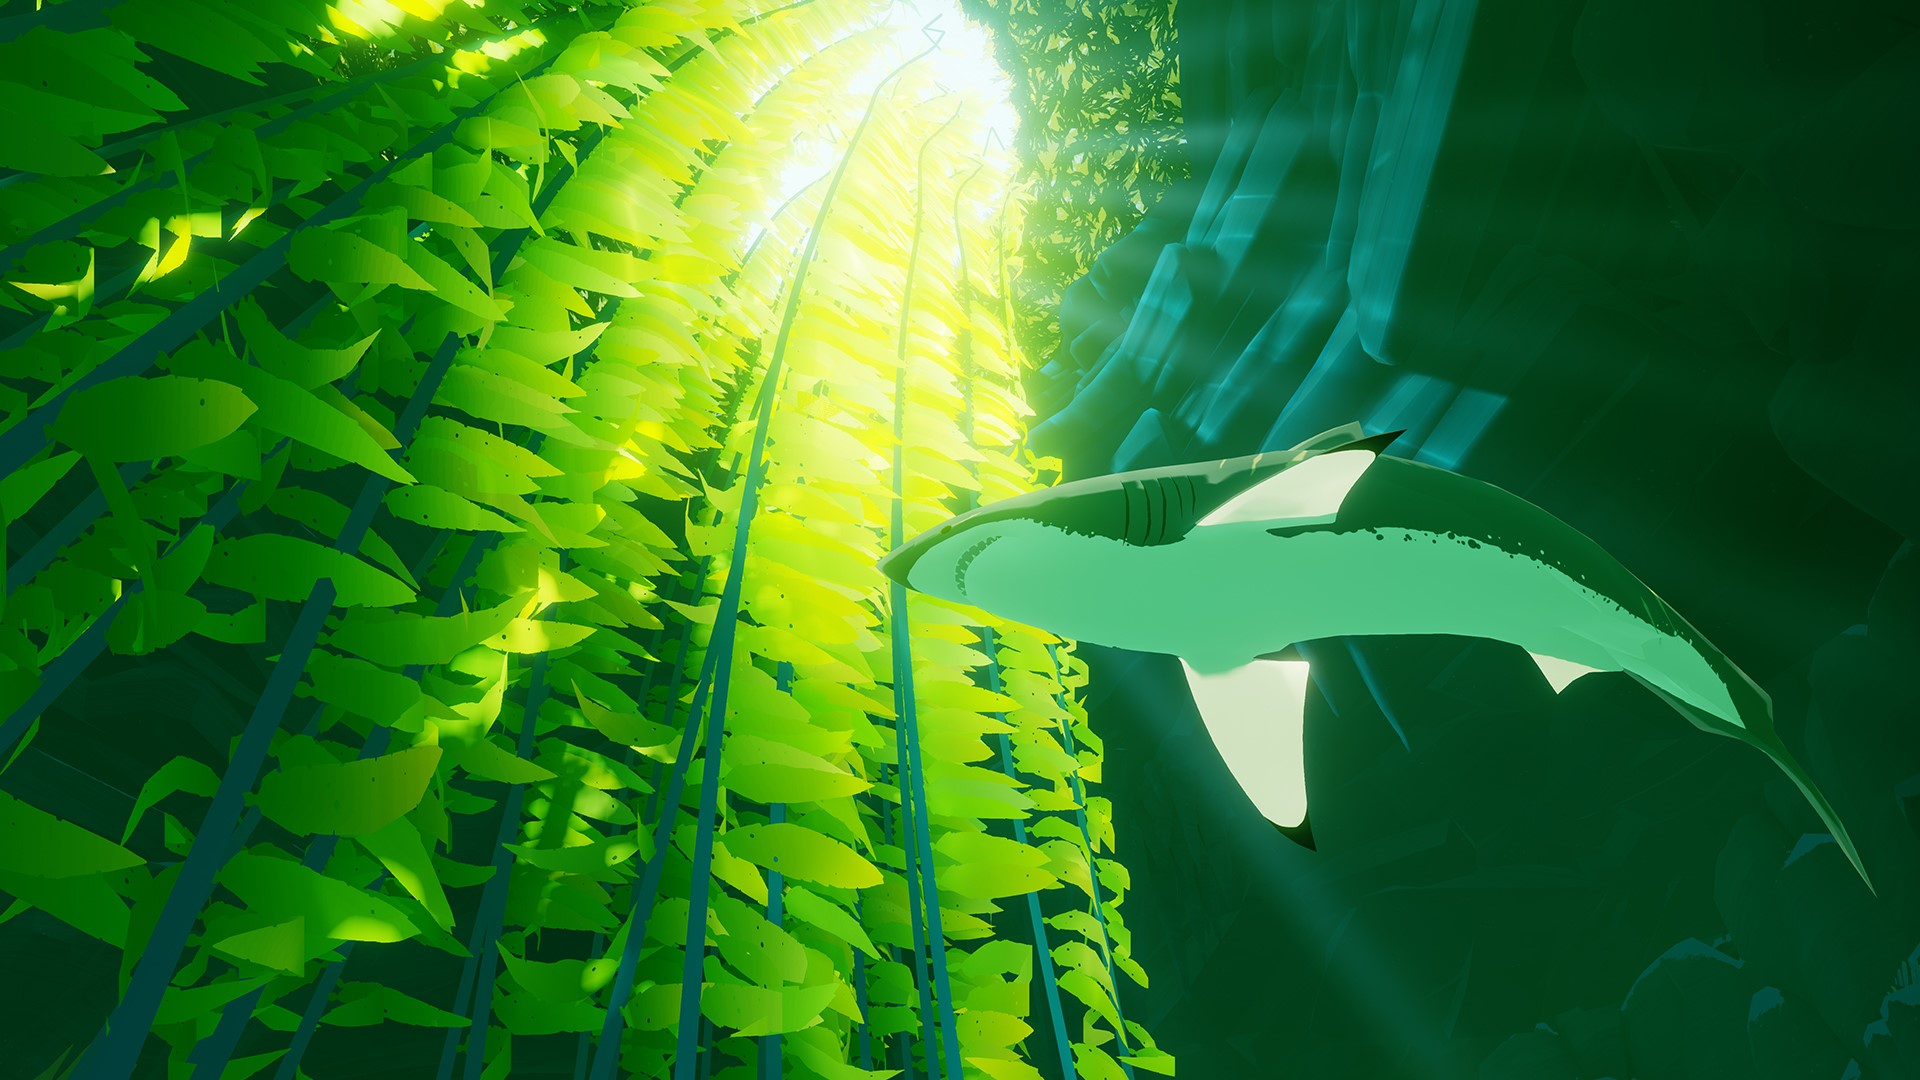 ABZU (Steam Key, Region Free)